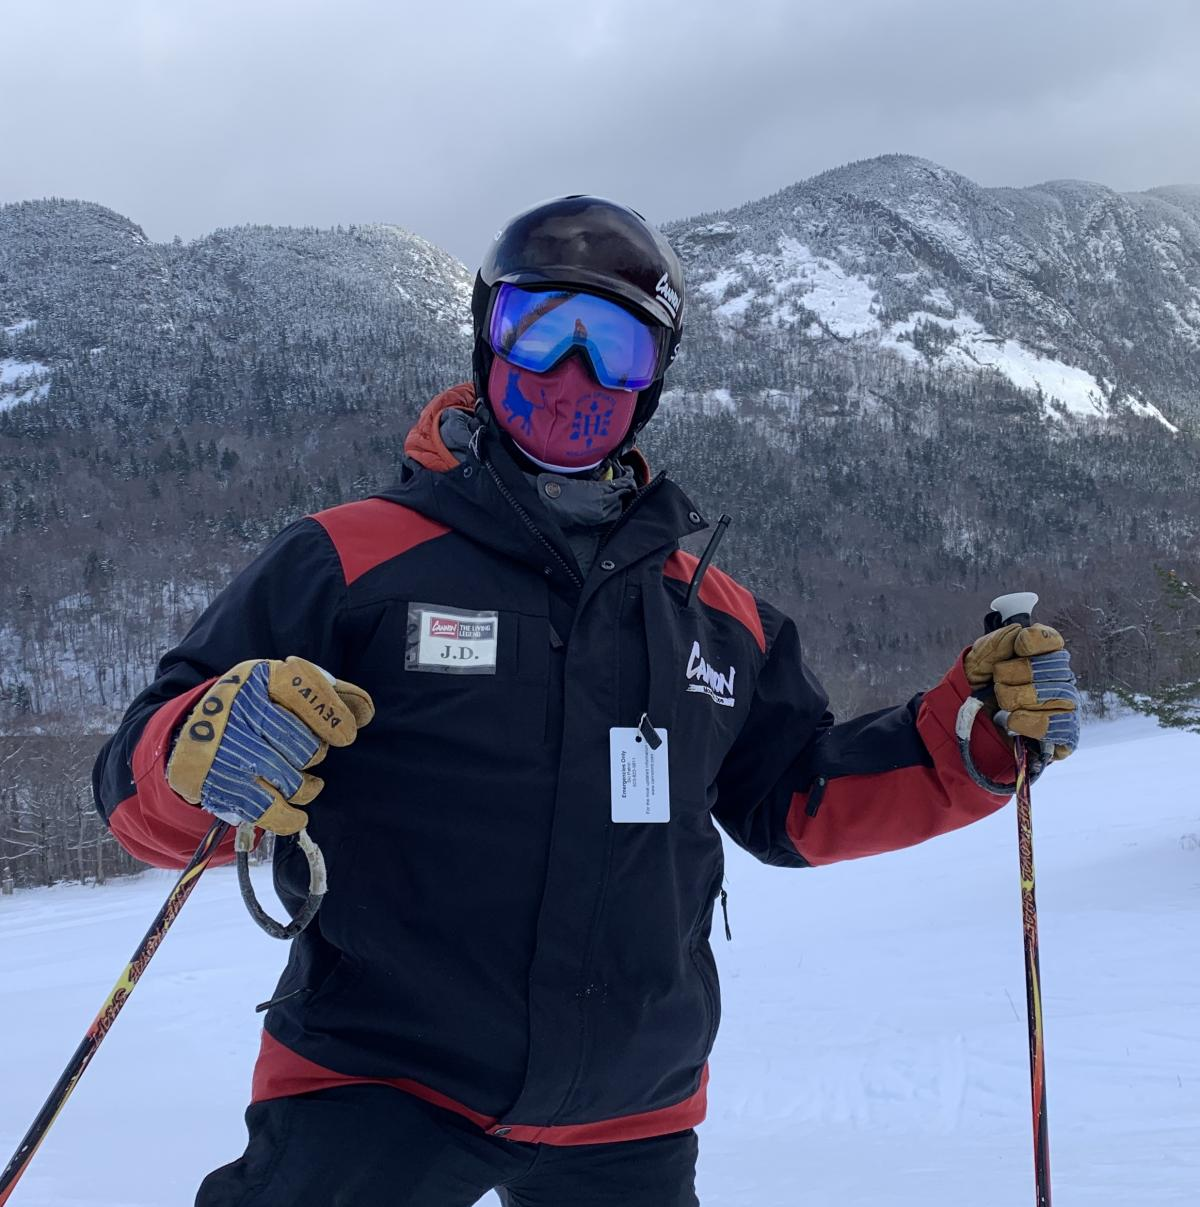 Cannon Mountain General Manager John DeVivo skis and rides the chairlifts each day to make sure the safety rules are being followed. He wants to make sure the ski area can stay open and keep upwards of 500 workers employed.